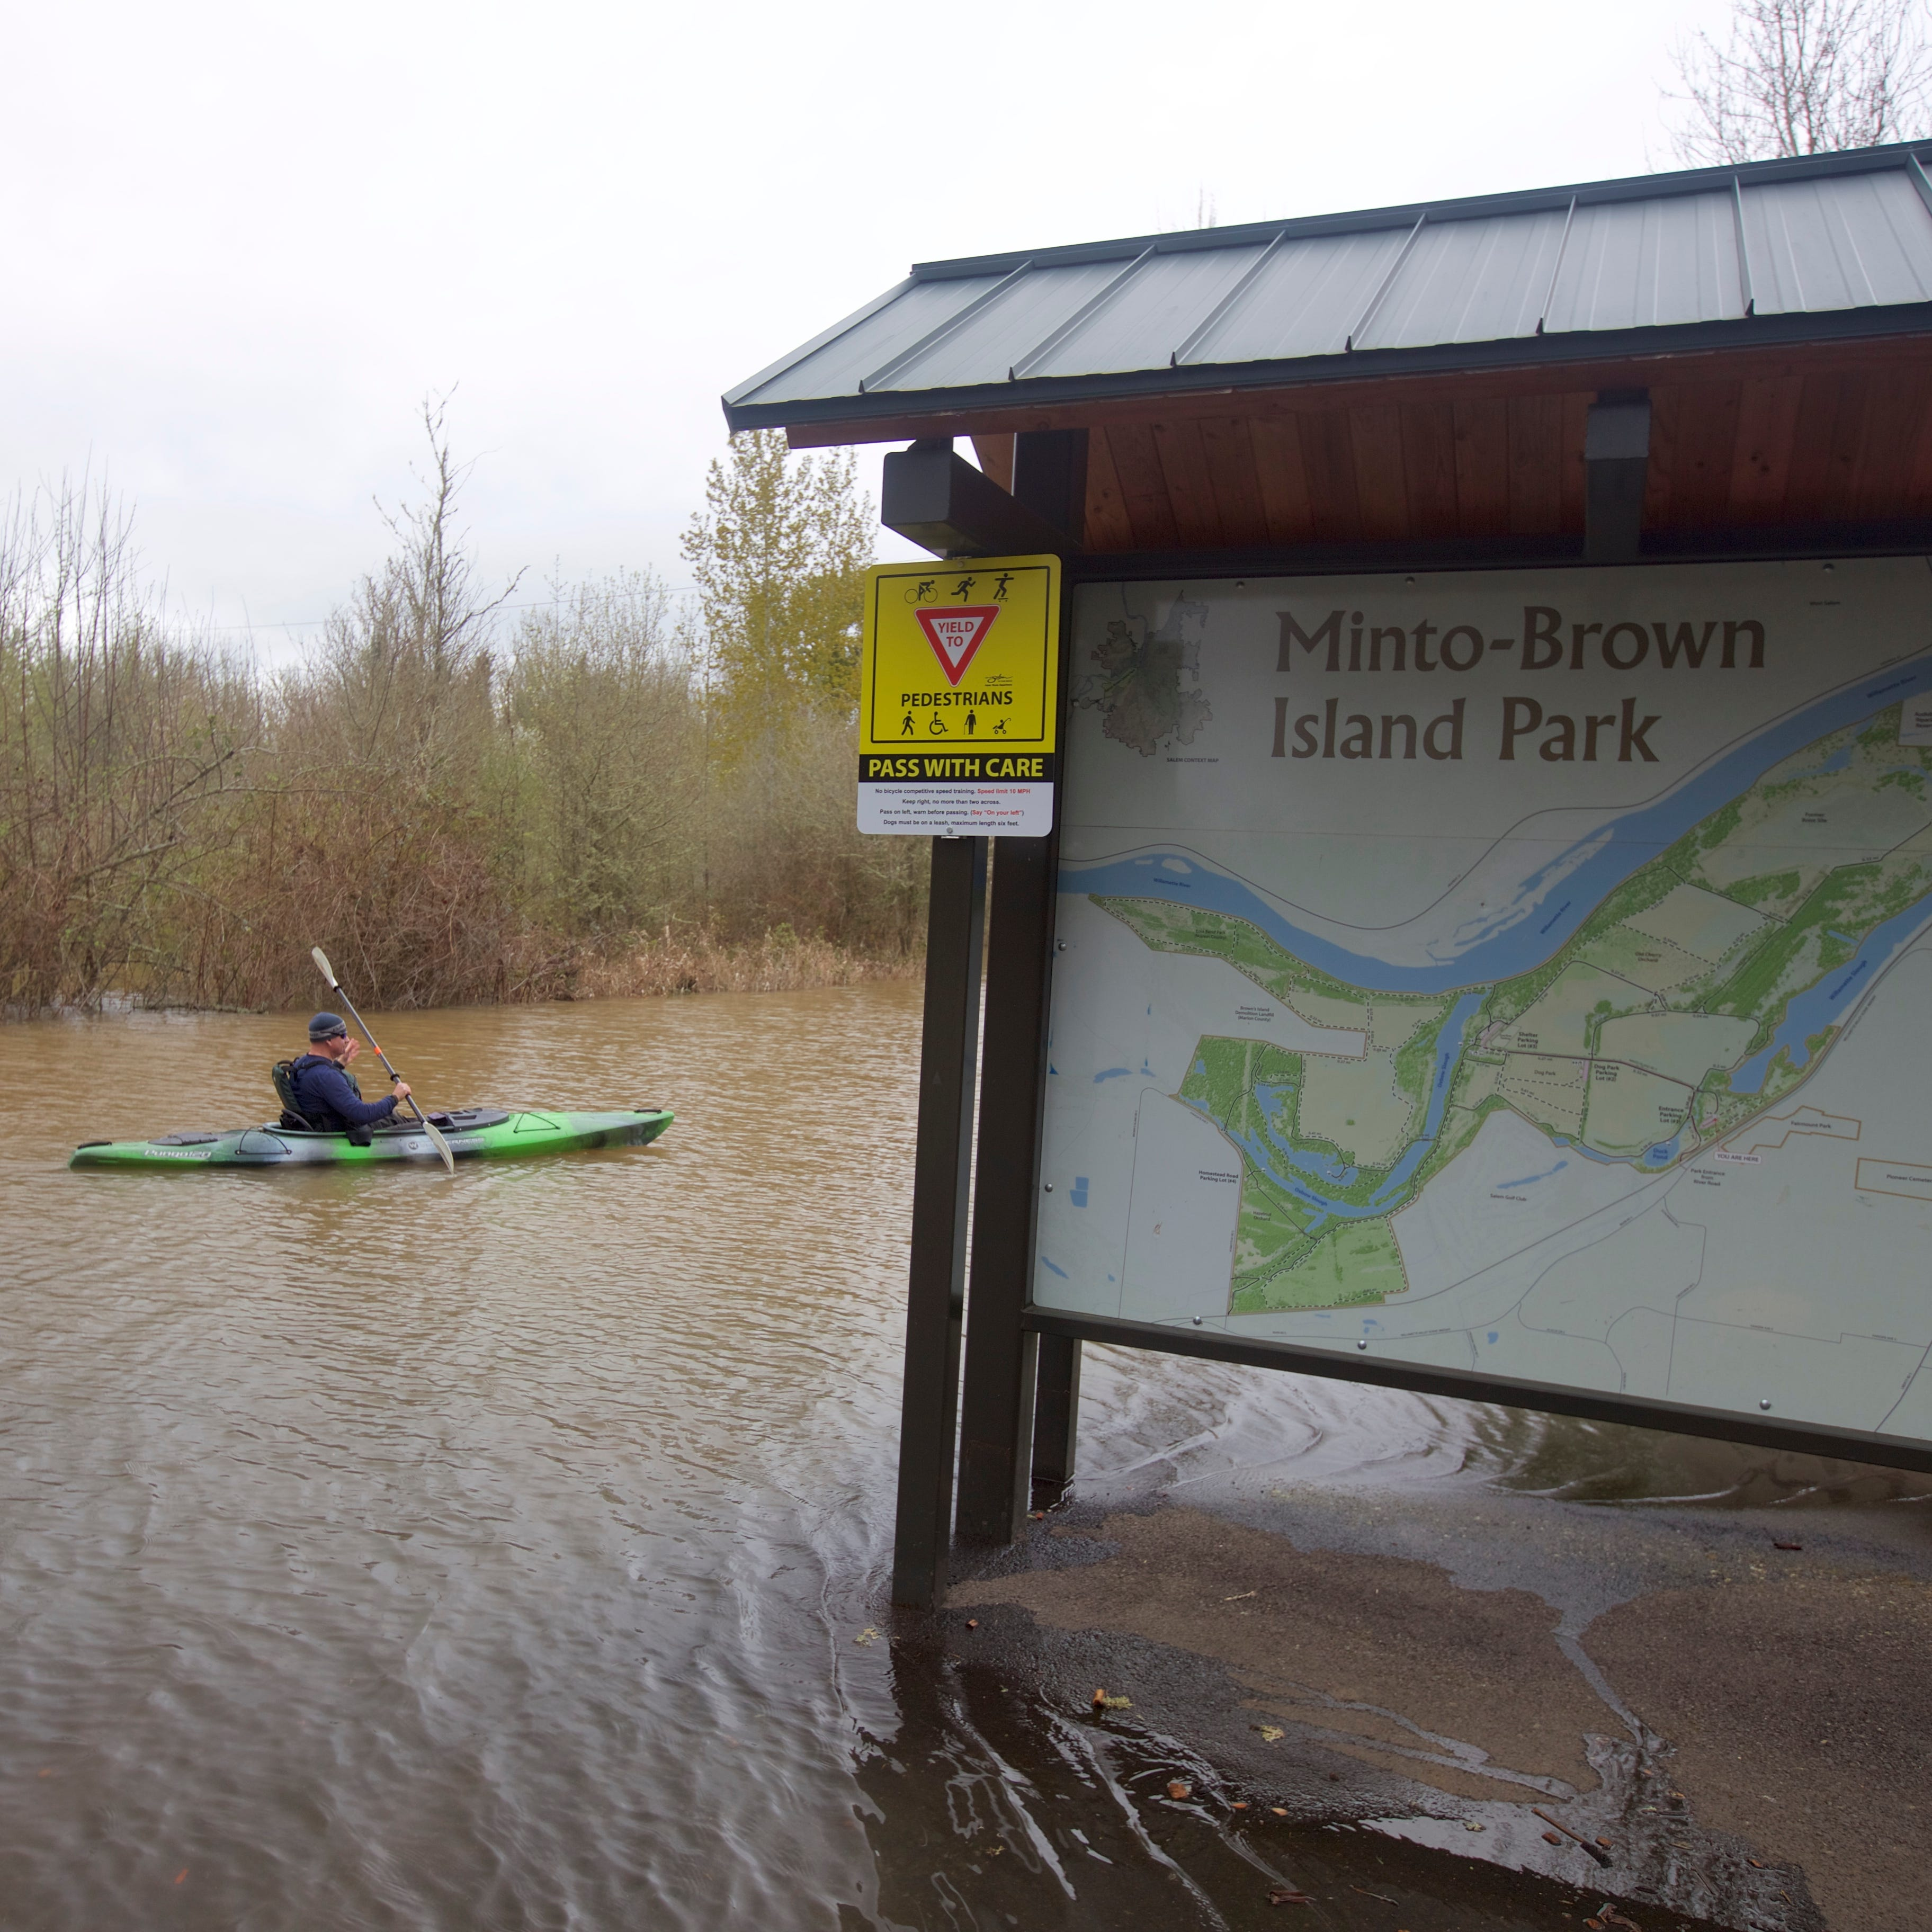 As Willamette River rises, kayakers explore flooded forest at Salem's Minto-Brown Island